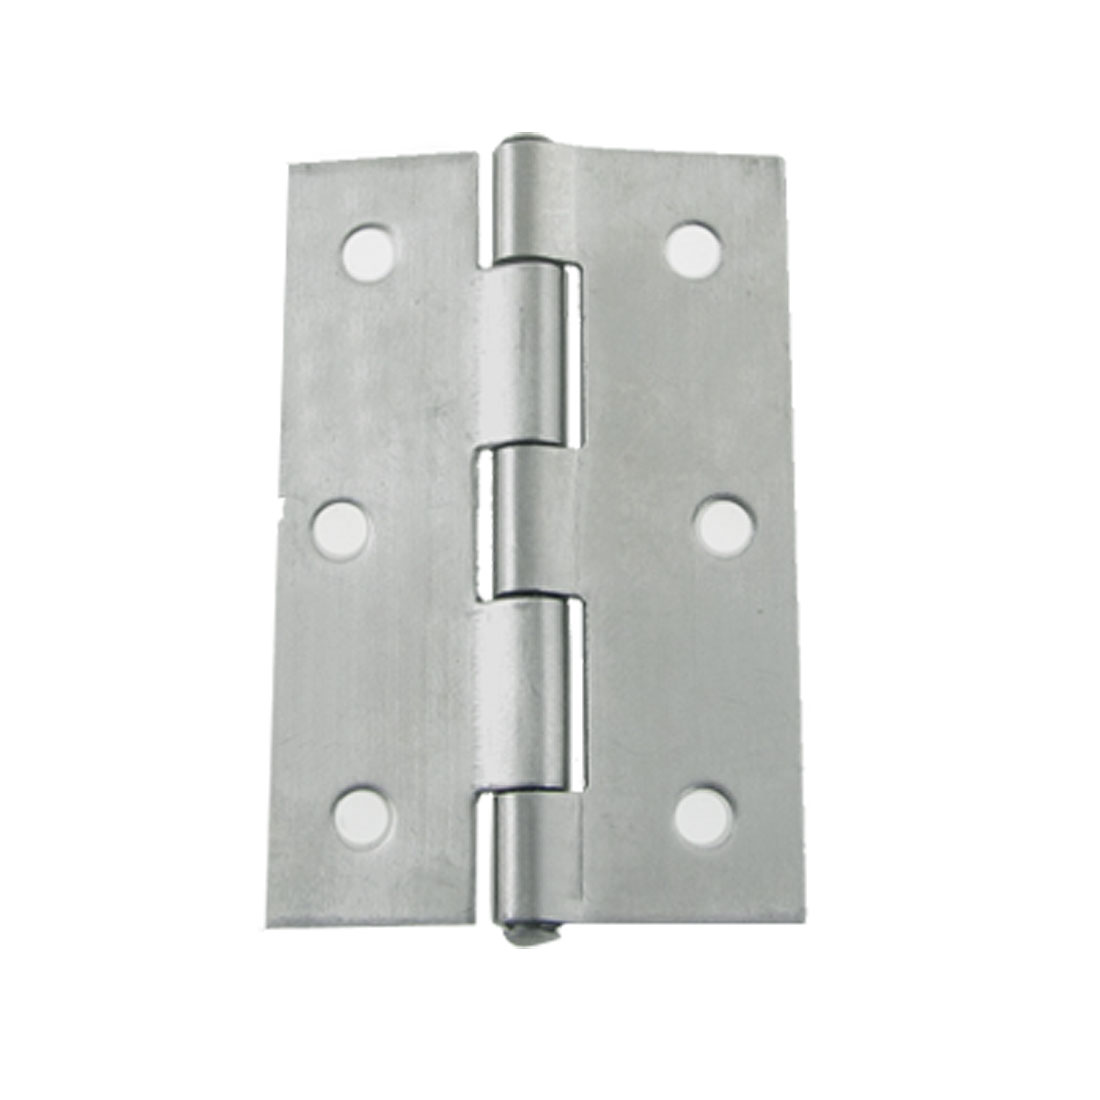 "2 Pcs Metal Single Action Door Butt Hinges 2.5"" Length"